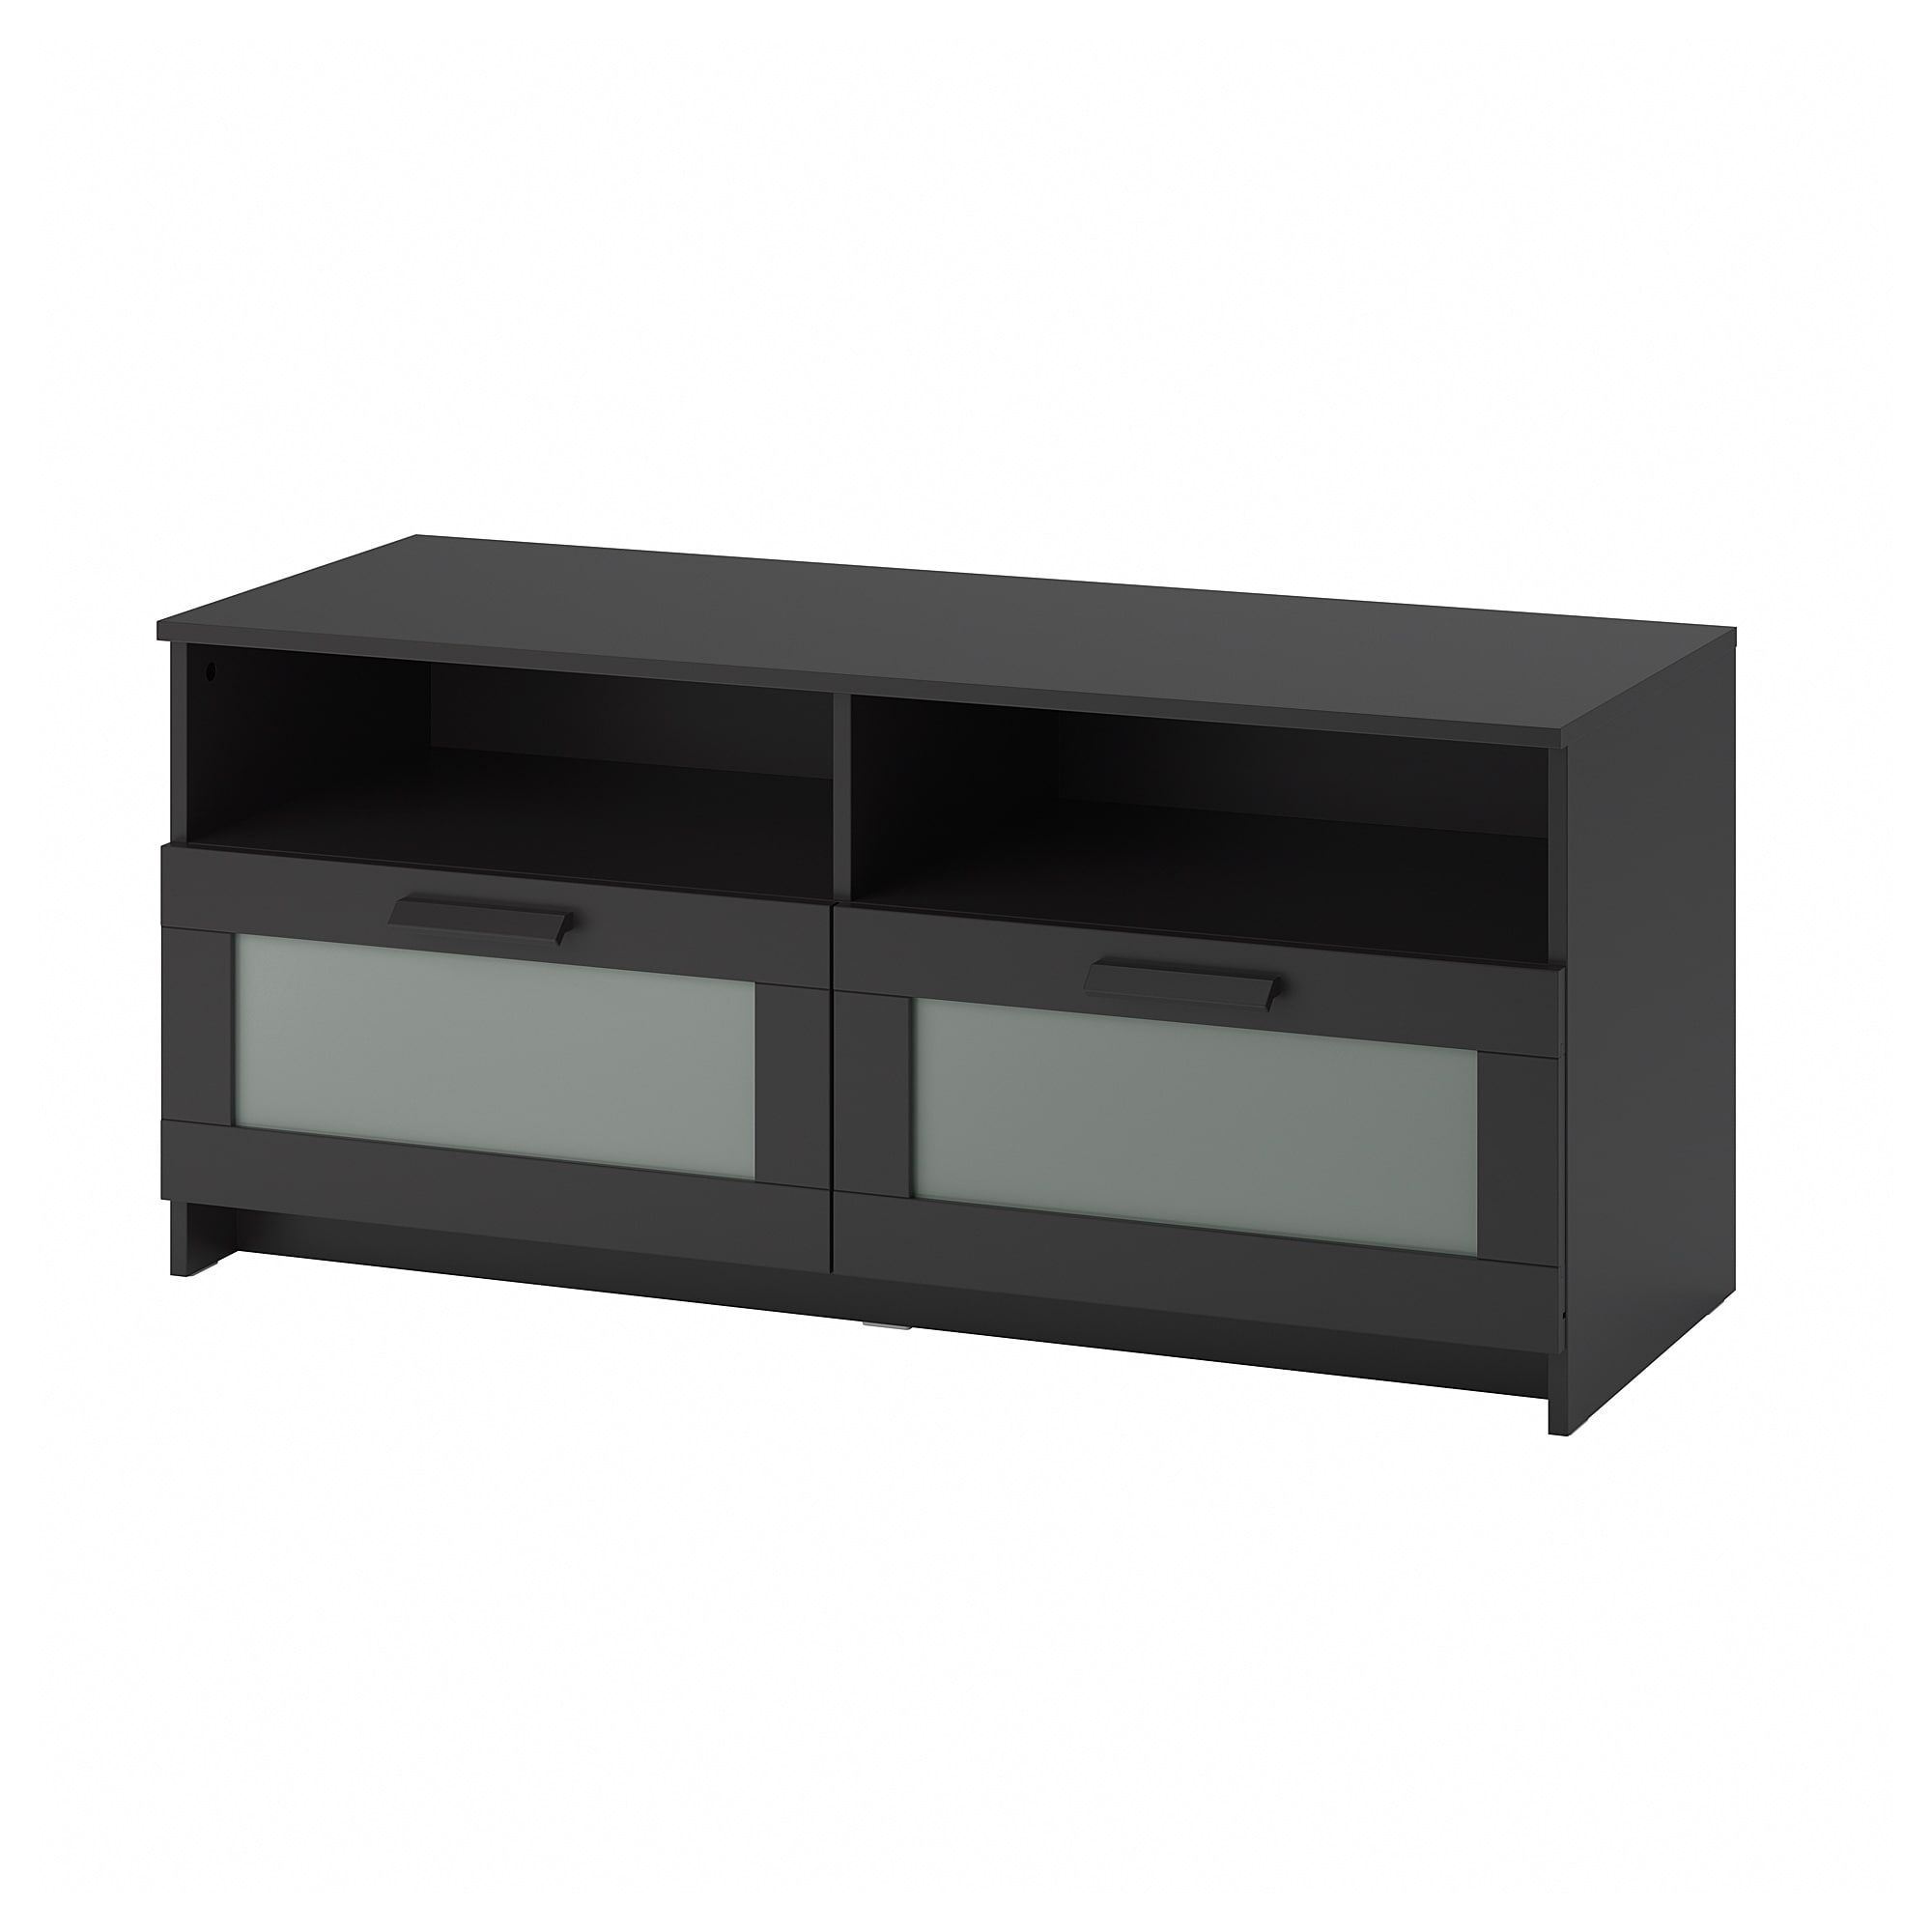 Ikea Tv Bank Schwarz Brimnes Tv Bank Schwarz In 2019 Products Ikea Ikea Tv